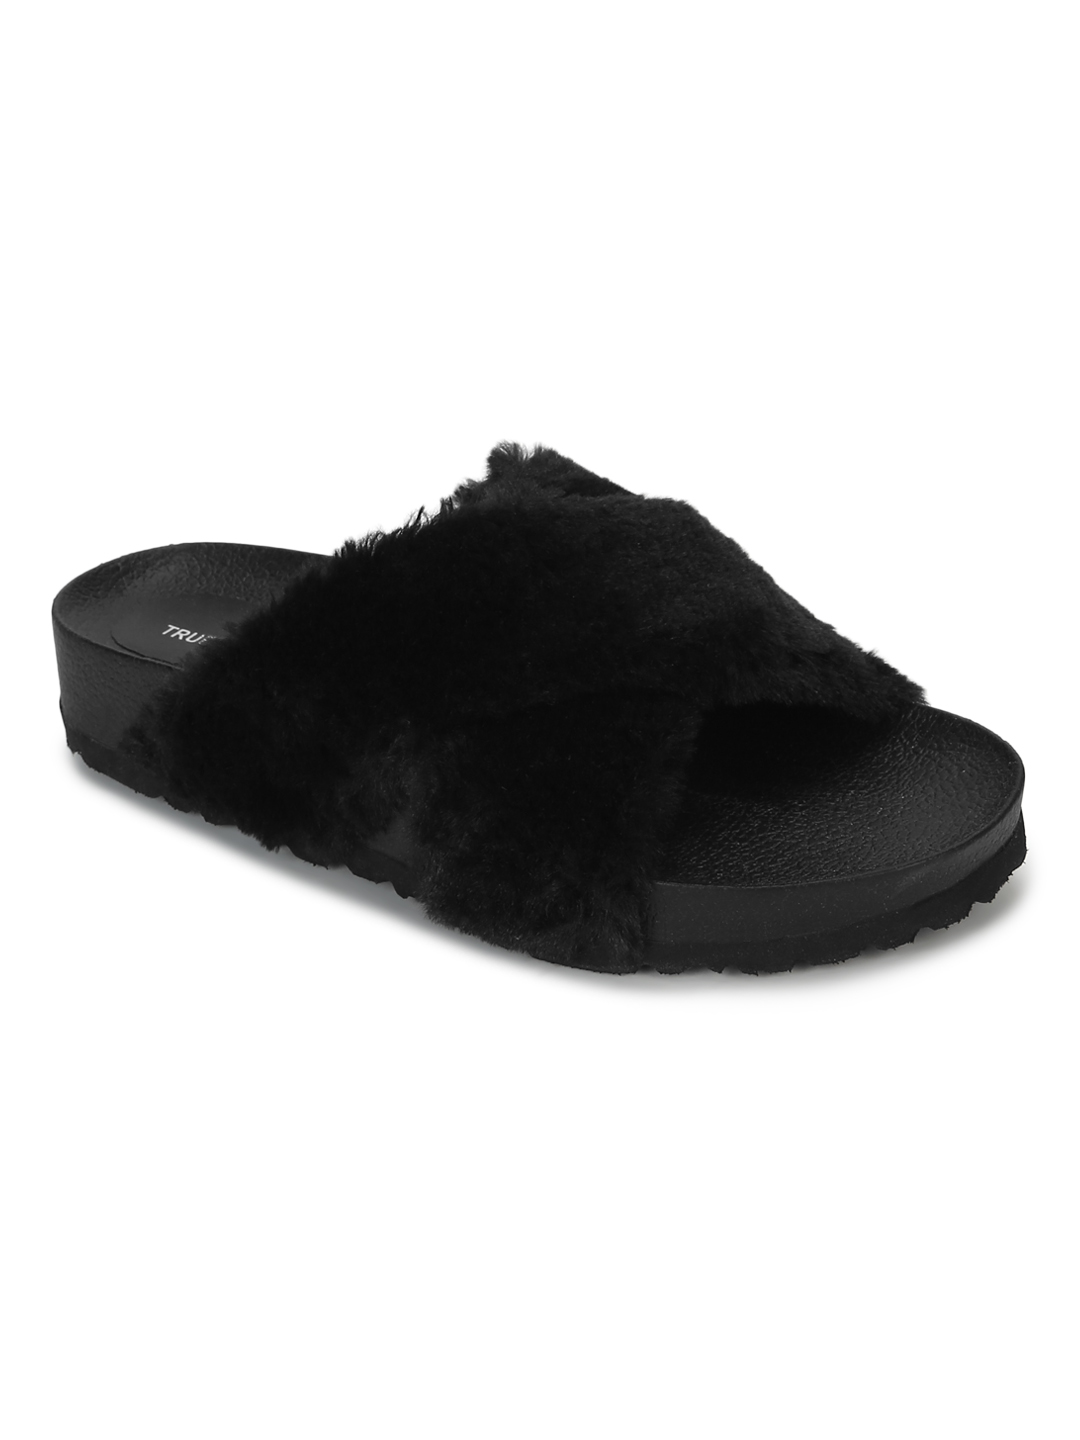 Truffle Collection | Truffle Collection Black Fuzzy Fur Slides